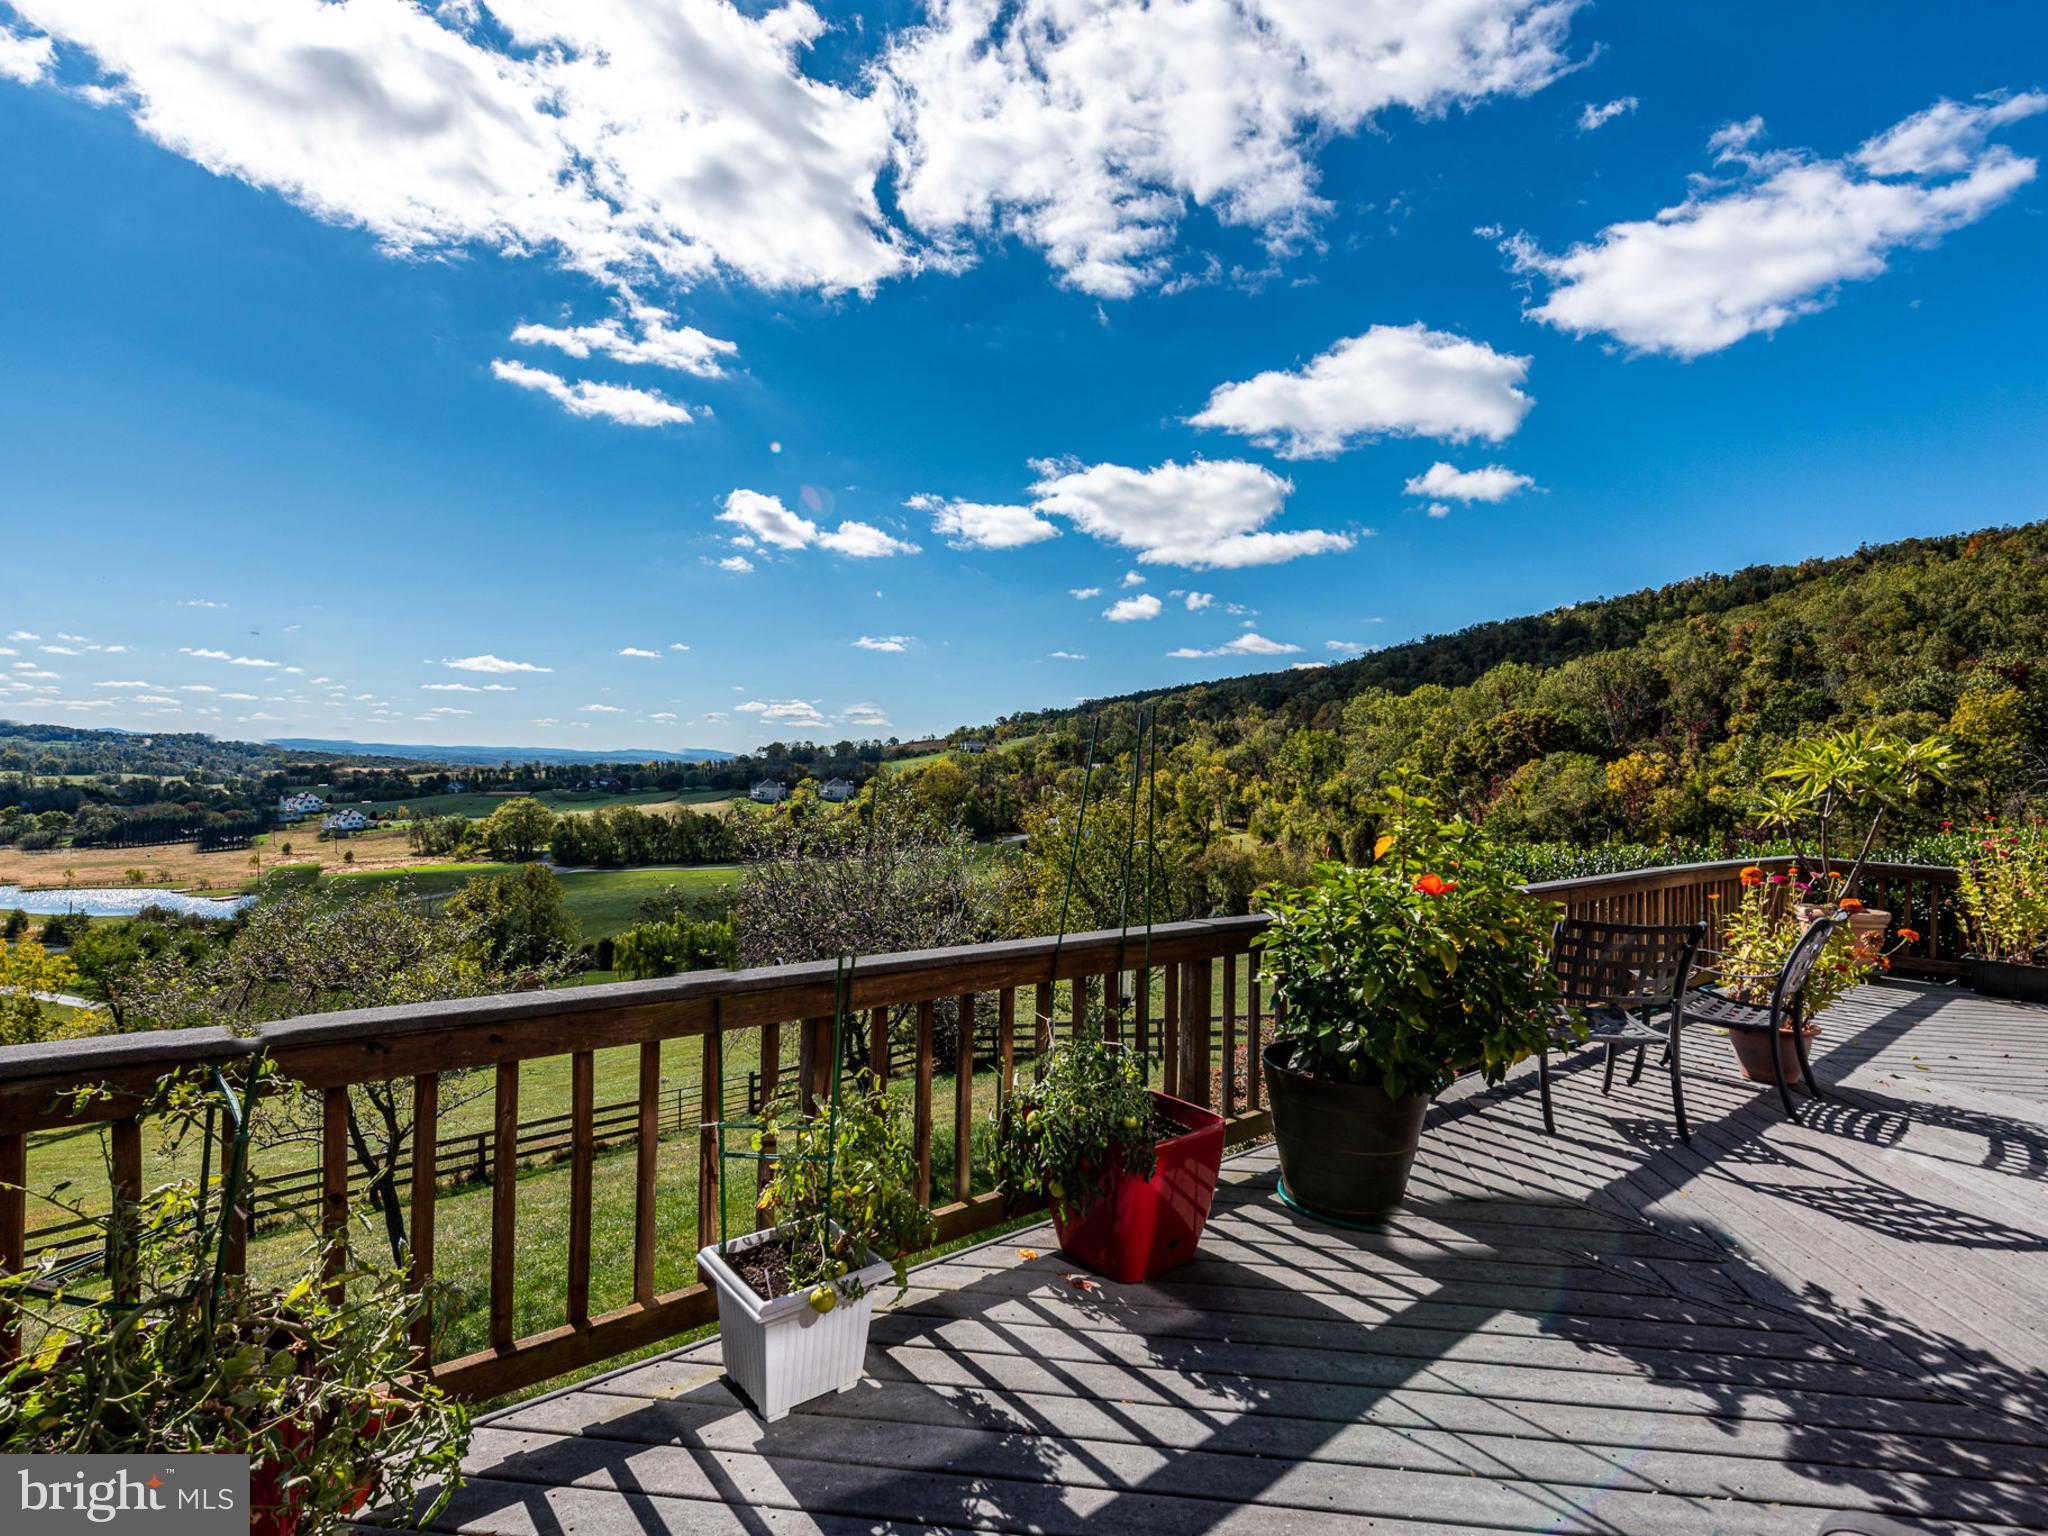 17022 Simmental Lane, Round Hill, VA 20141 now has a new price of $989,000!